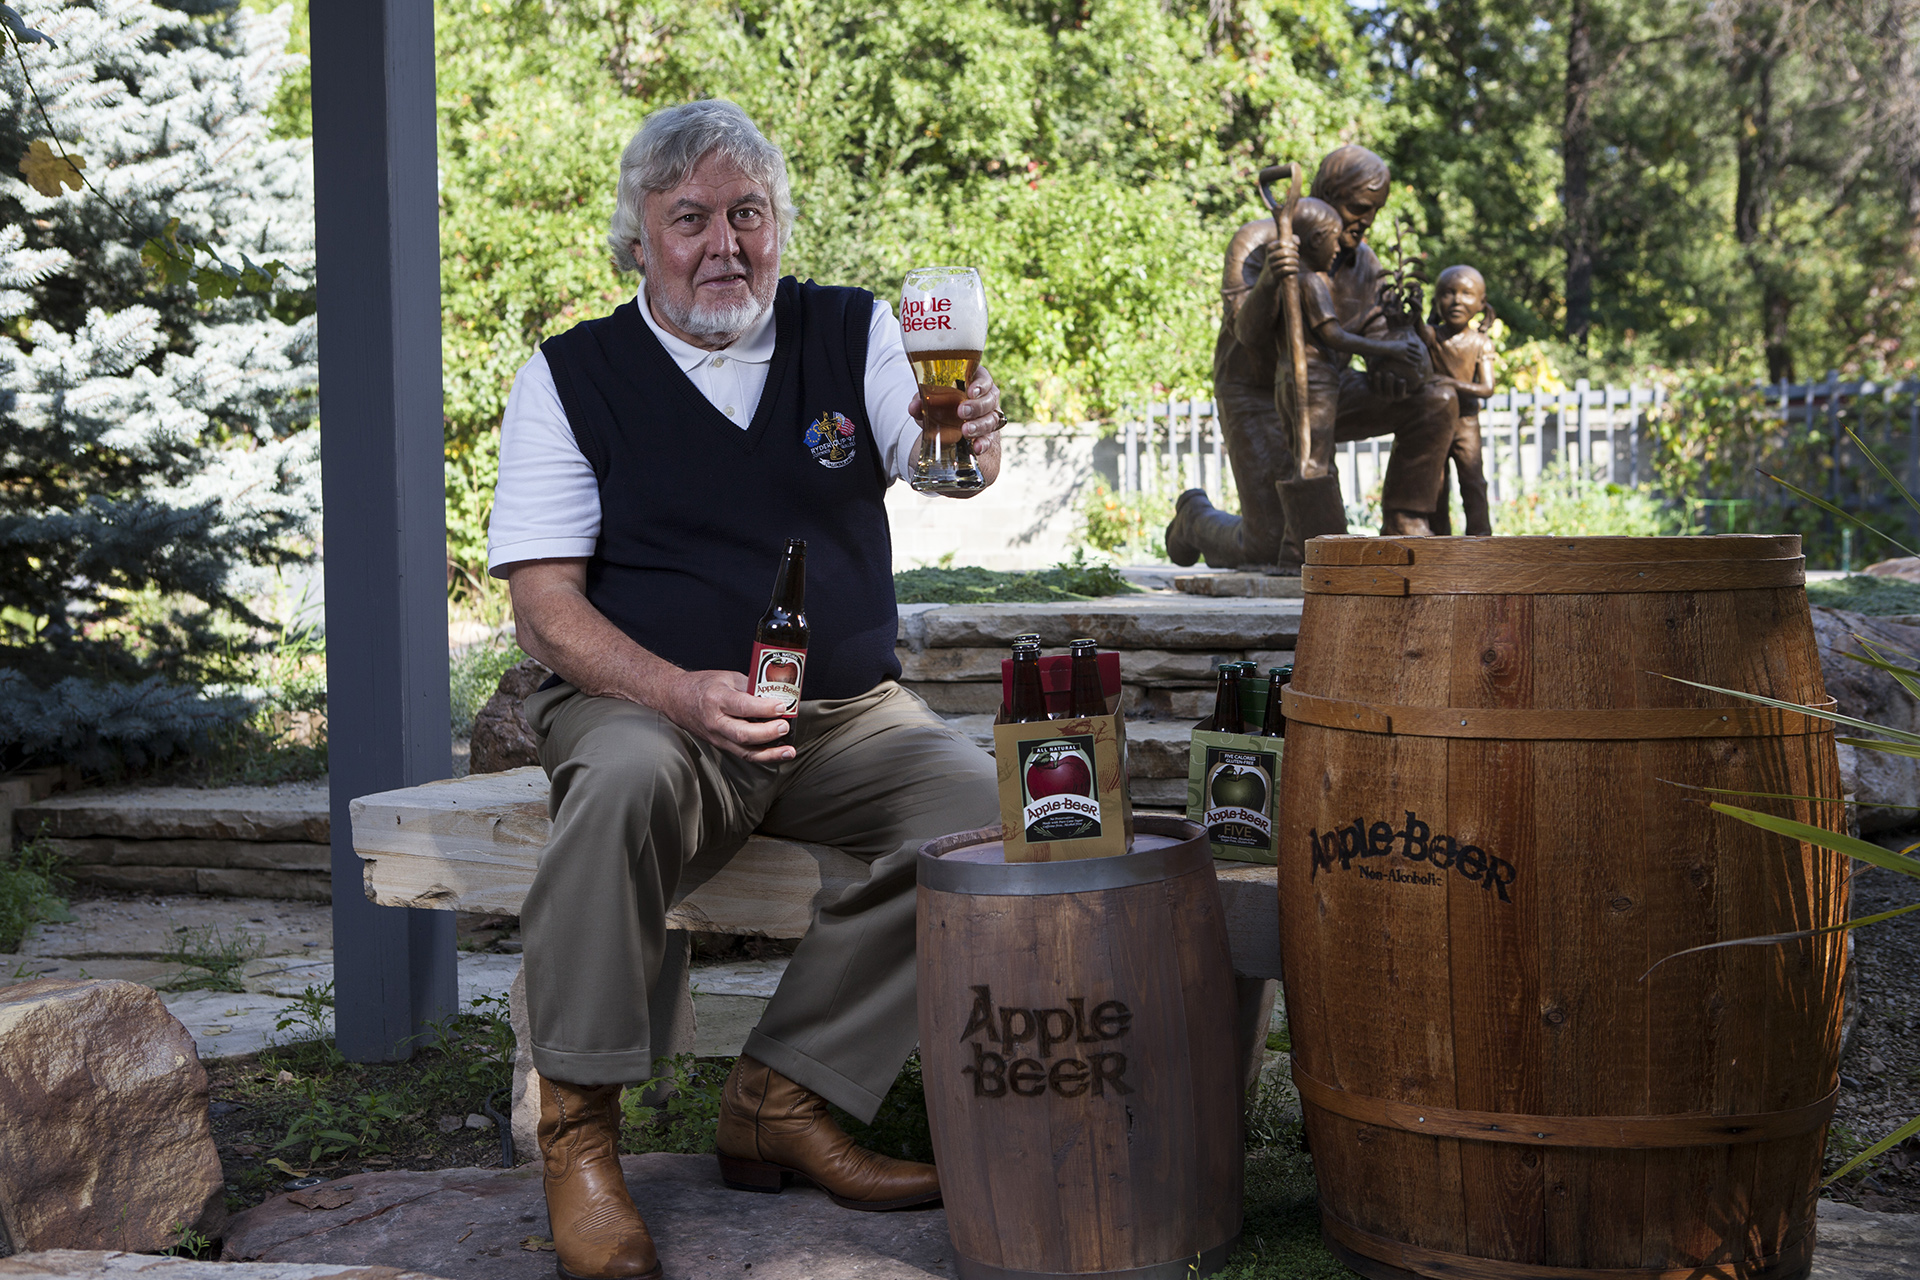 Apple Beer. Portrait of President and Ceo Larry Stillman